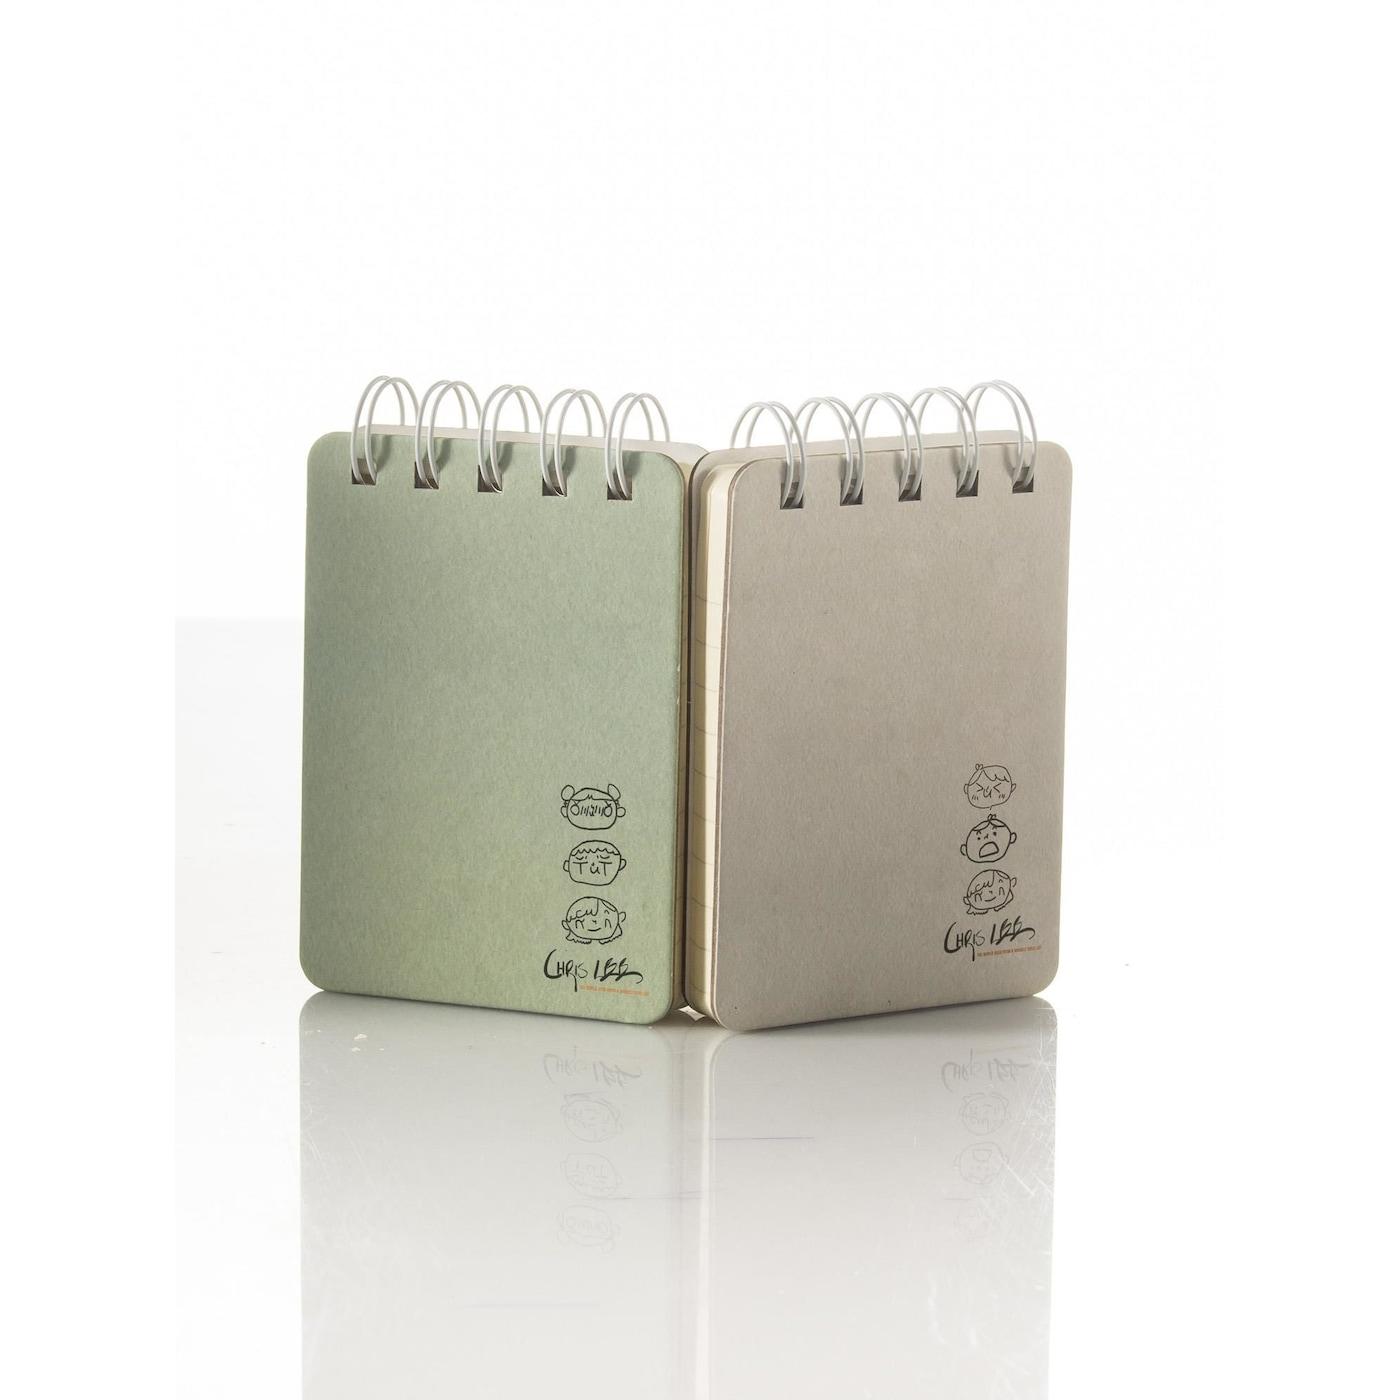 Set of 2 mini notebooks, green and gray